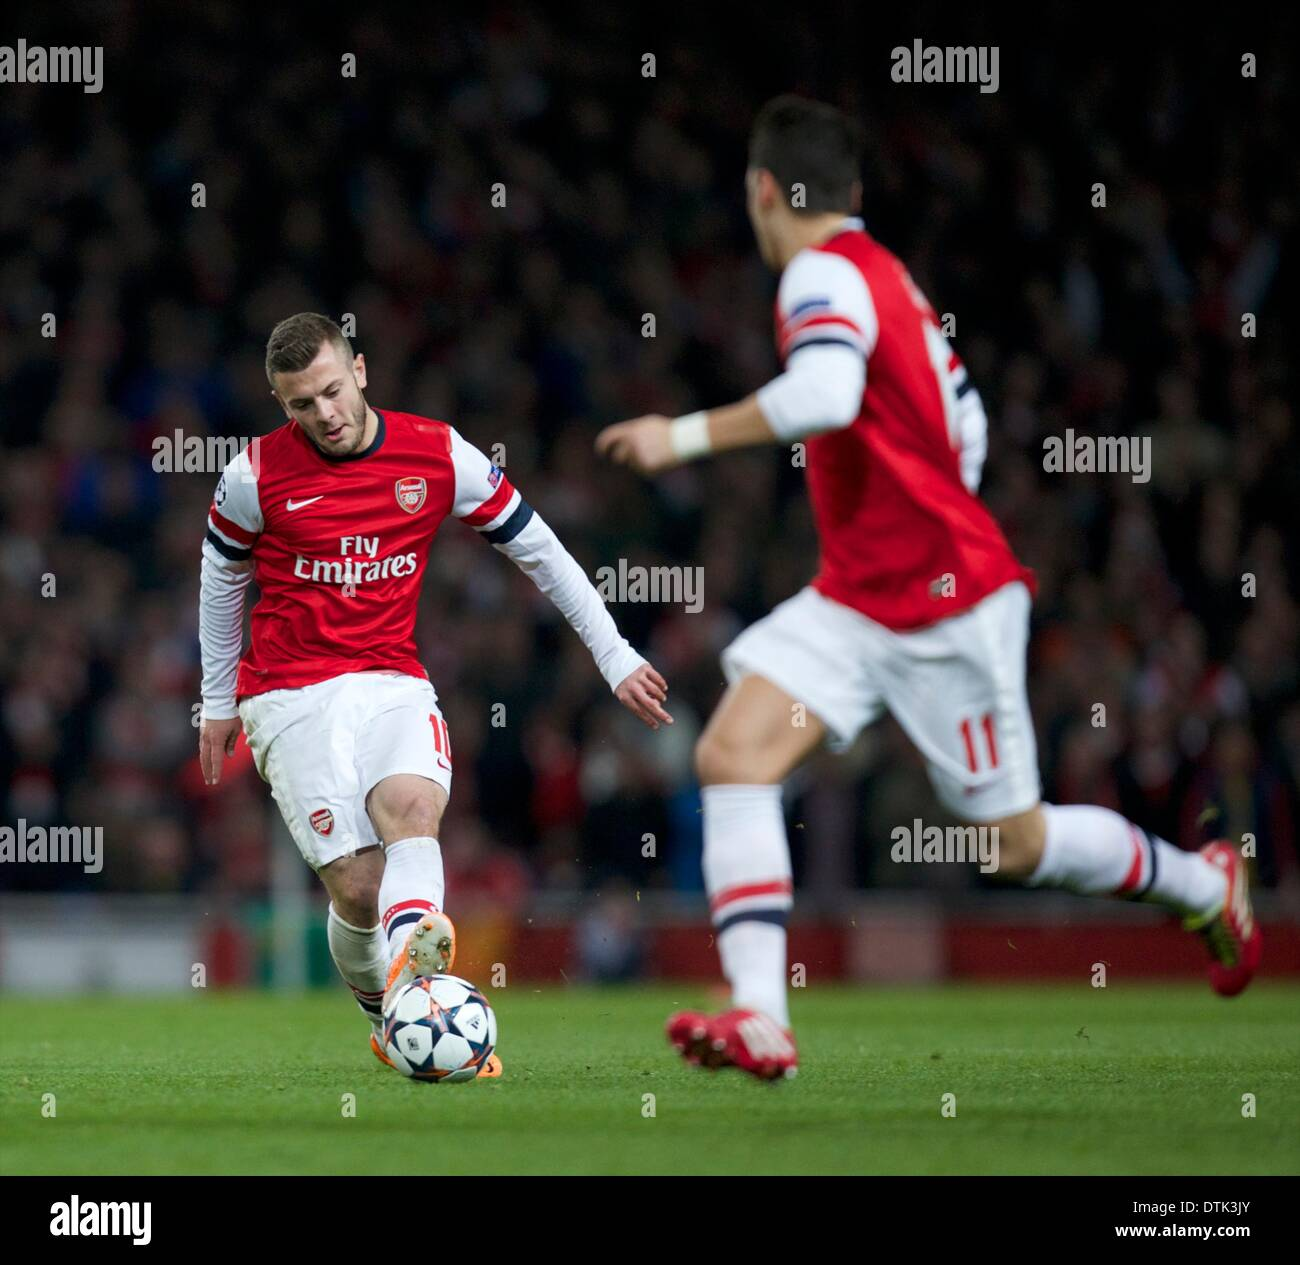 London, UK. 19th Feb, 2014. Jack Wilshere of Arsenal during the Champions League game between Arsenal and Bayern Munich from the Emirates Stadium. Credit:  Action Plus Sports/Alamy Live News - Stock Image